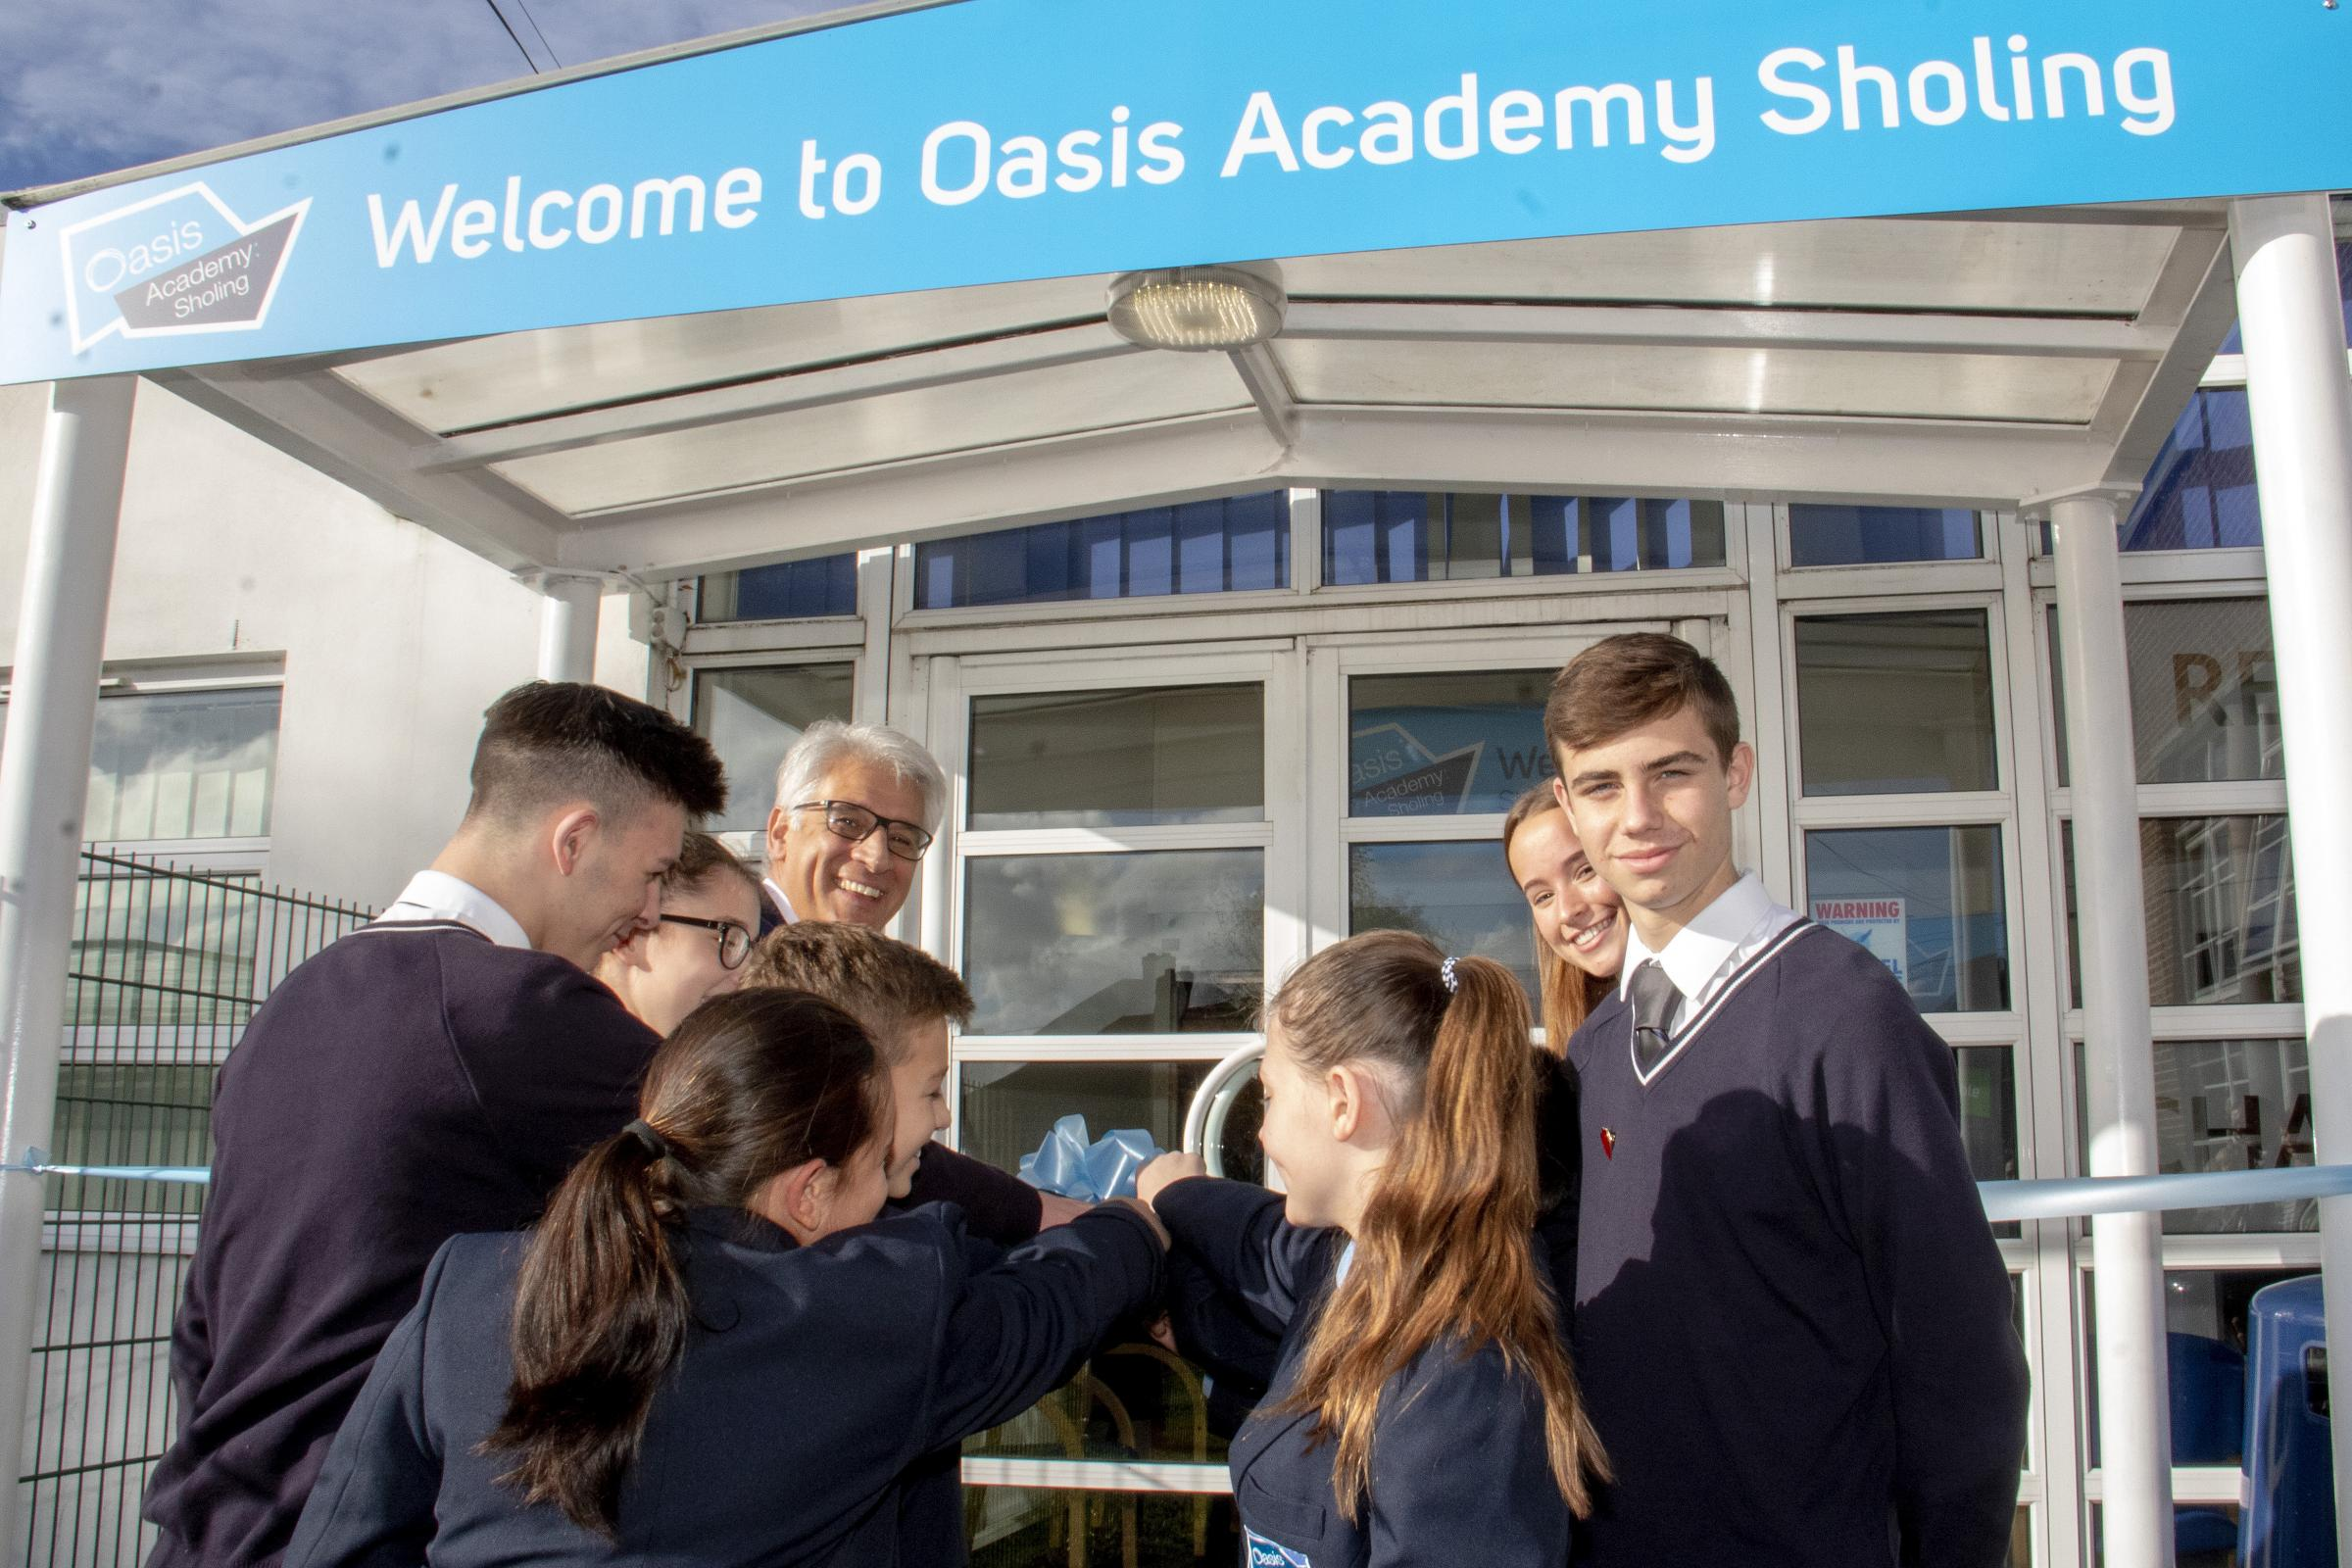 Oasis community dating site